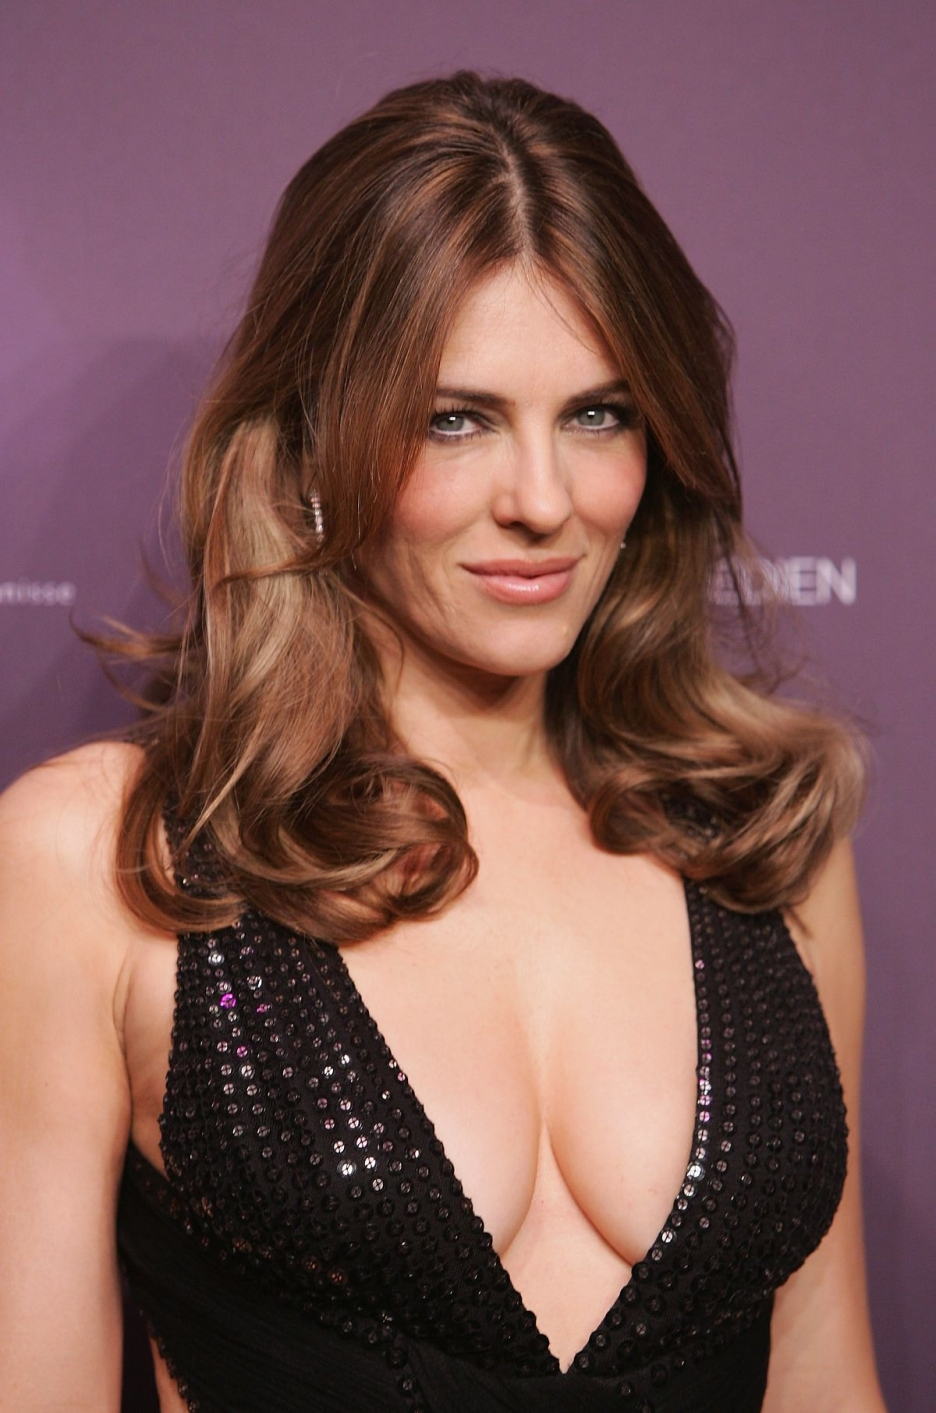 Elizabeth Hurley (born 1965) naked (88 pictures) Hacked, iCloud, swimsuit